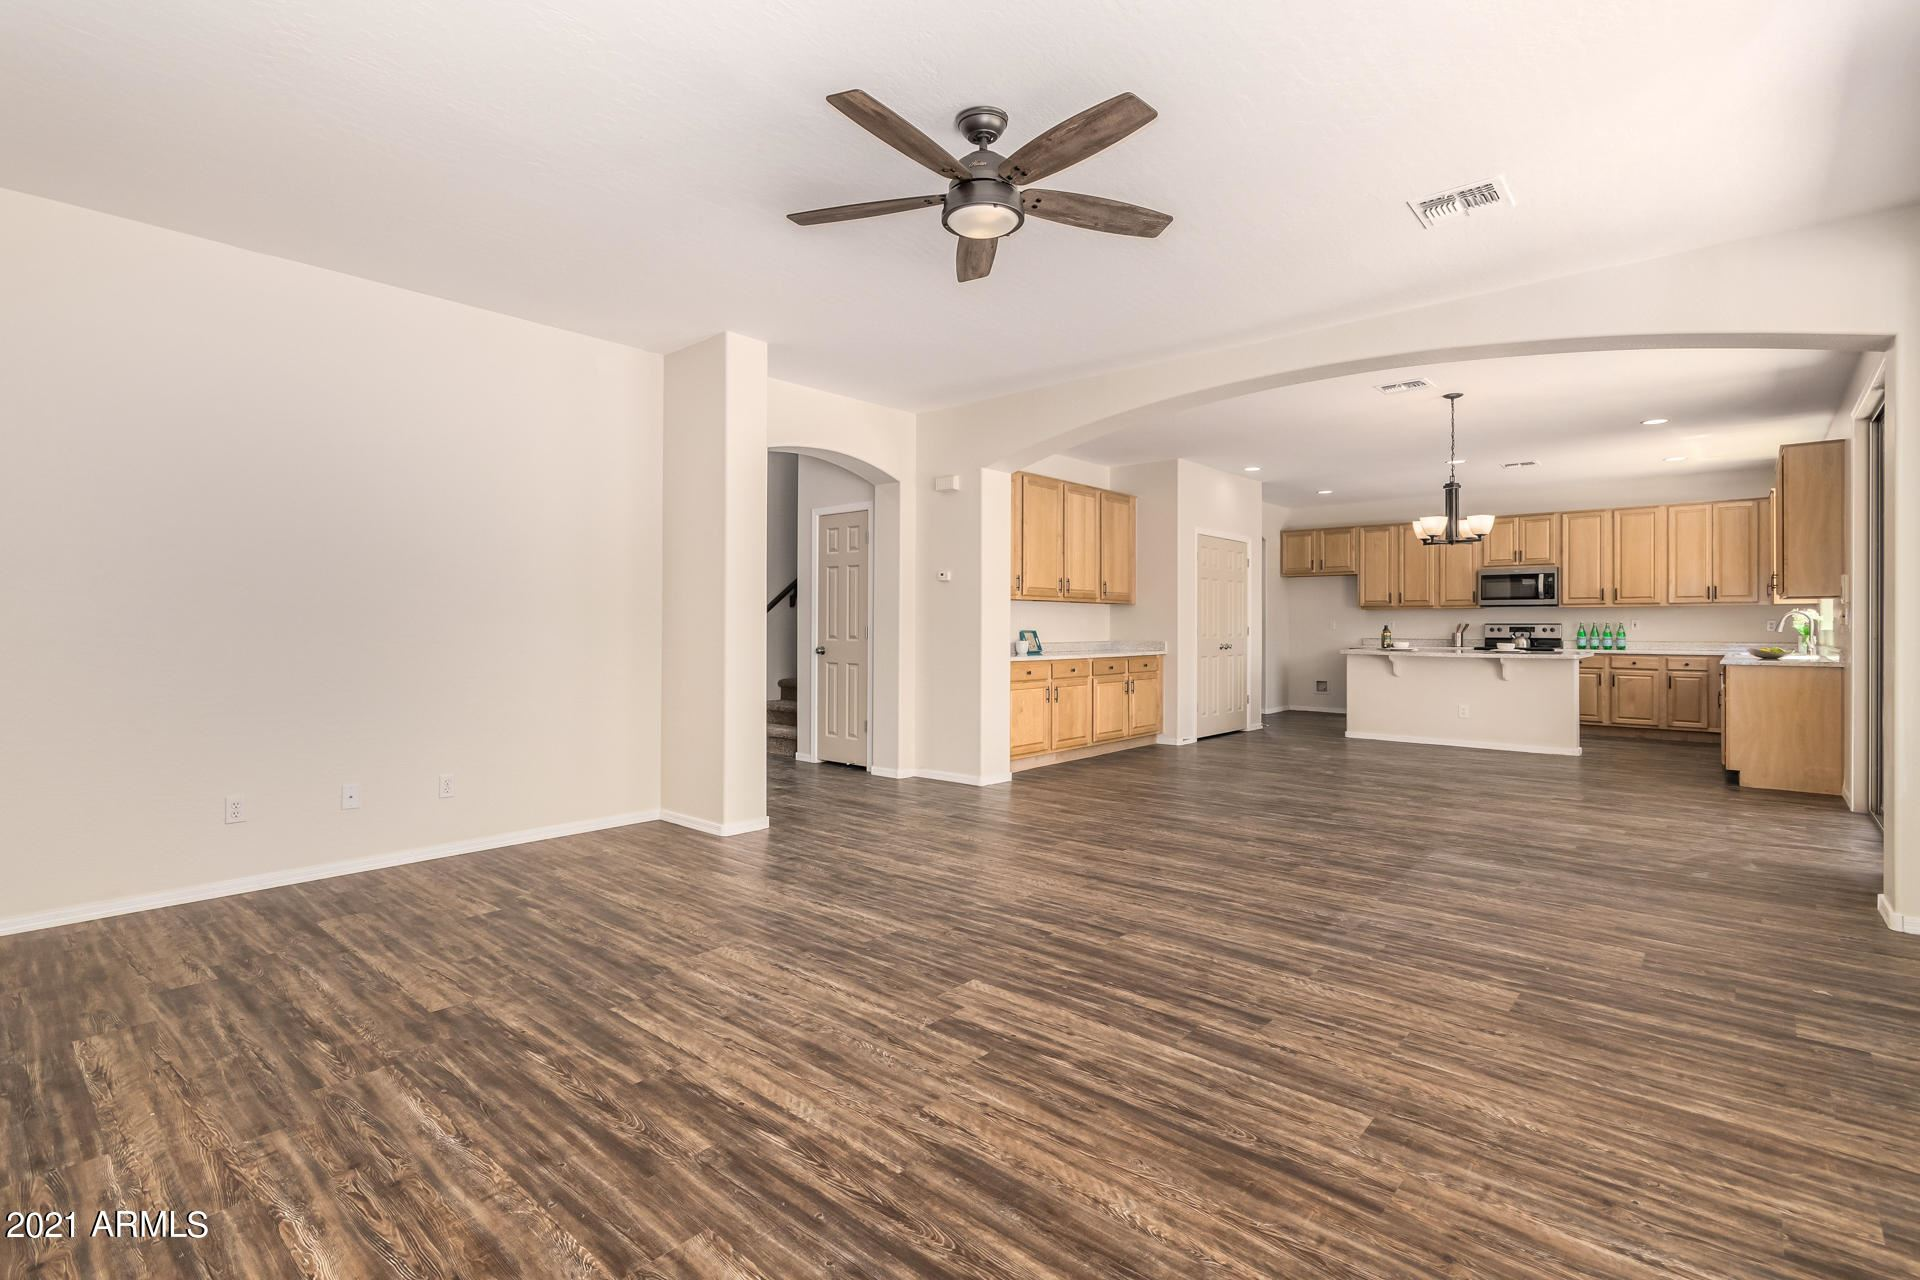 Photo of 13605 W SAN MIGUEL Avenue, Litchfield Park, AZ 85340 (MLS # 6232806)